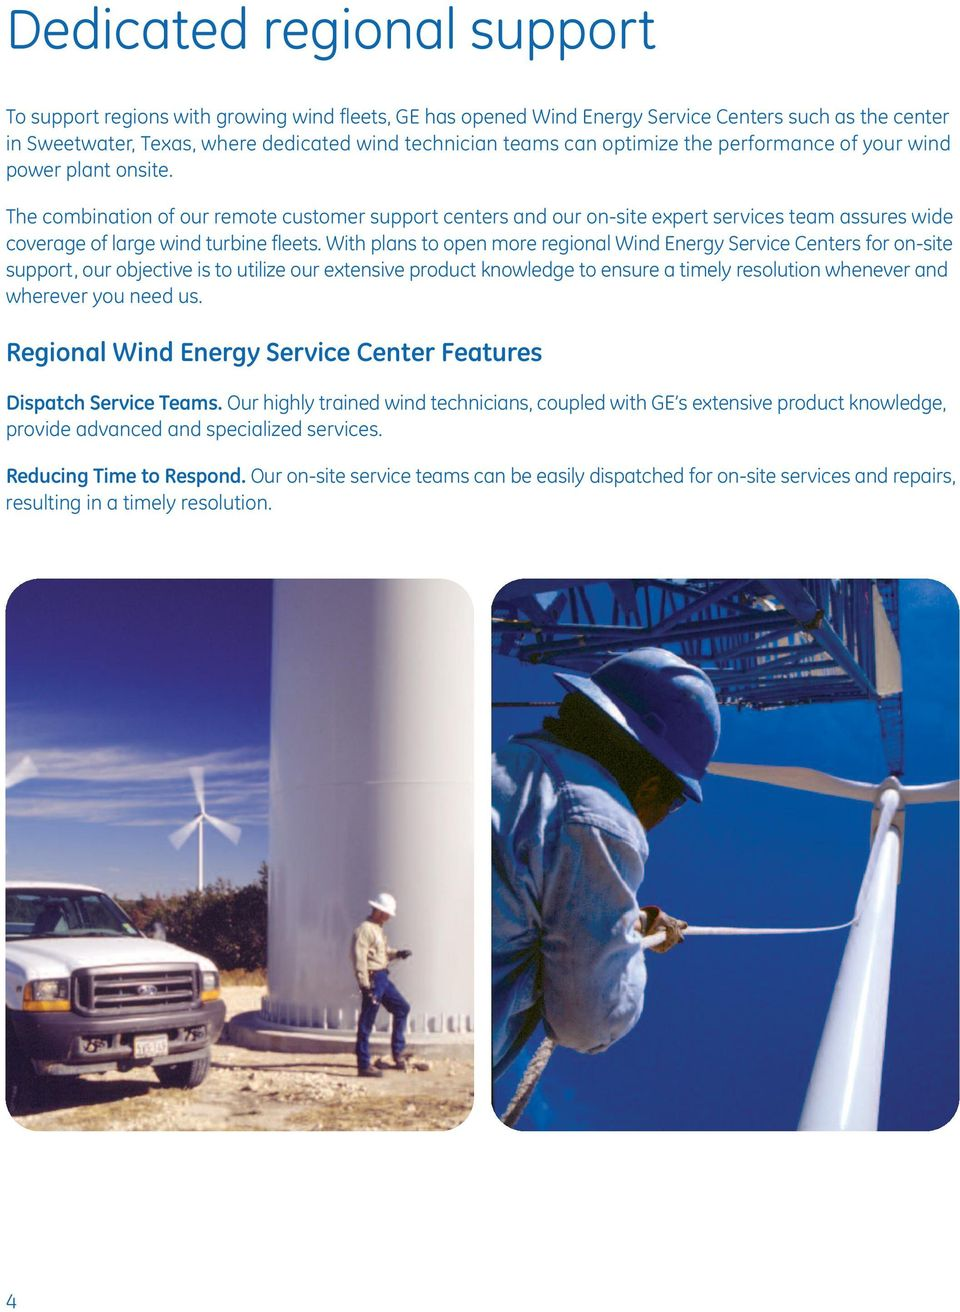 The combination of our remote customer support centers and our on-site expert services team assures wide coverage of large wind turbine fleets.